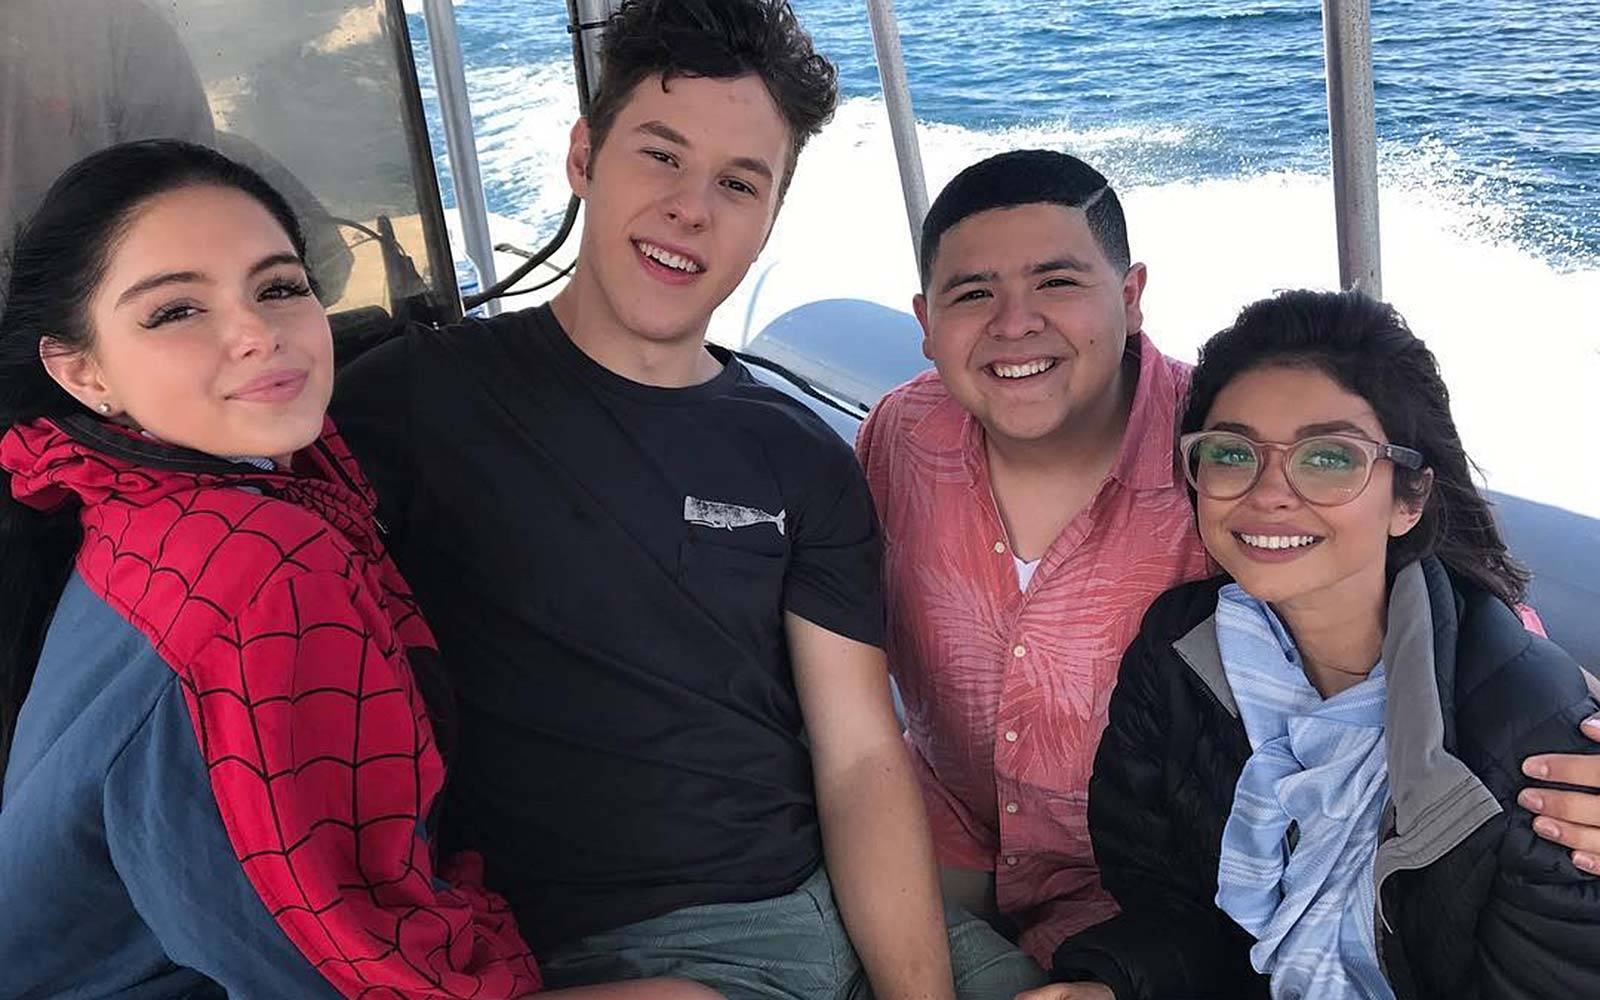 The 'Modern Family' Cast Makes Work Look Like a Vacation in Lake Tahoe